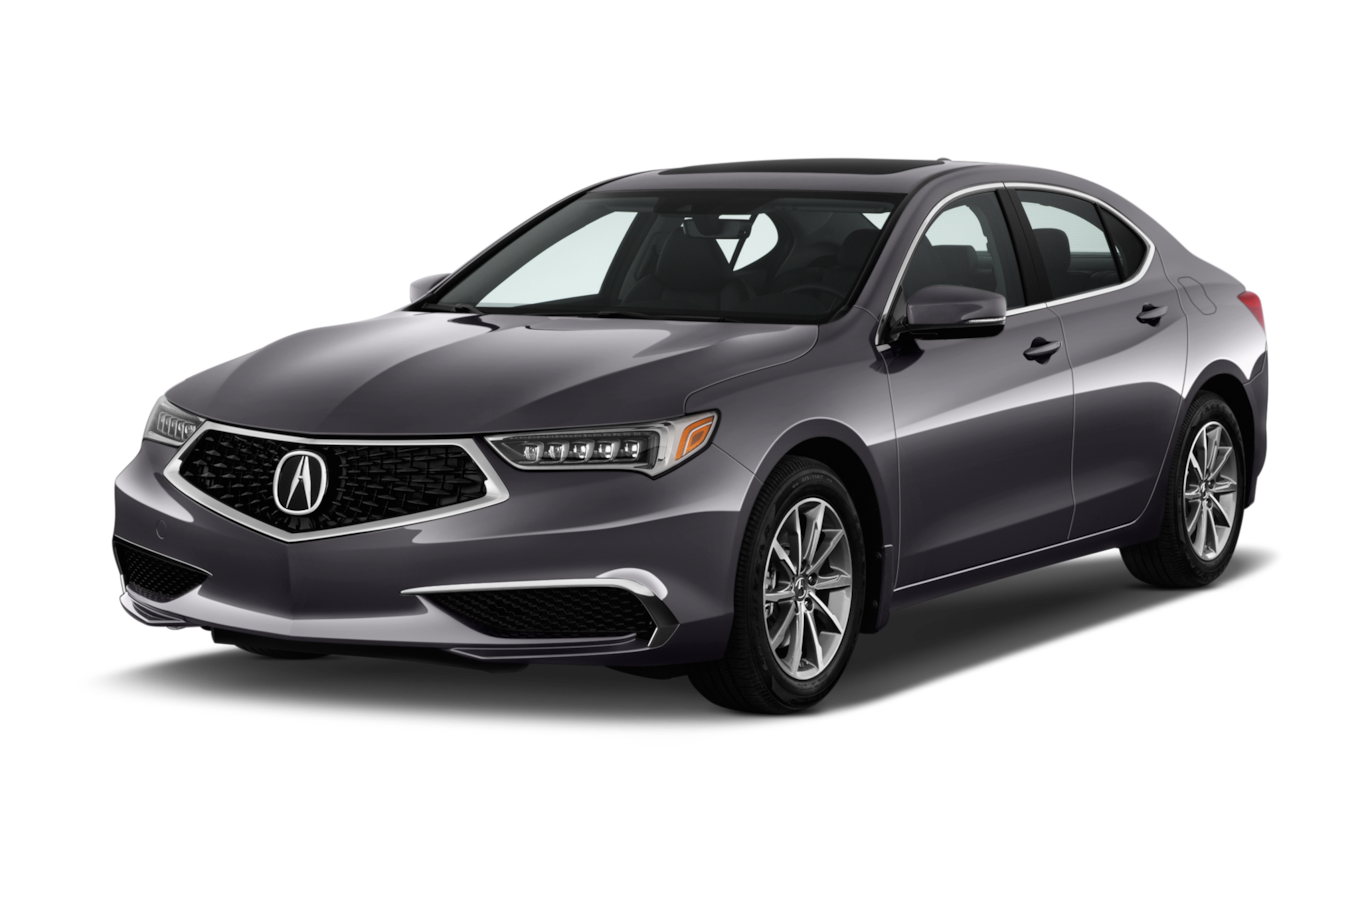 68 All New 2019 Acura Tlx Rumors Redesign